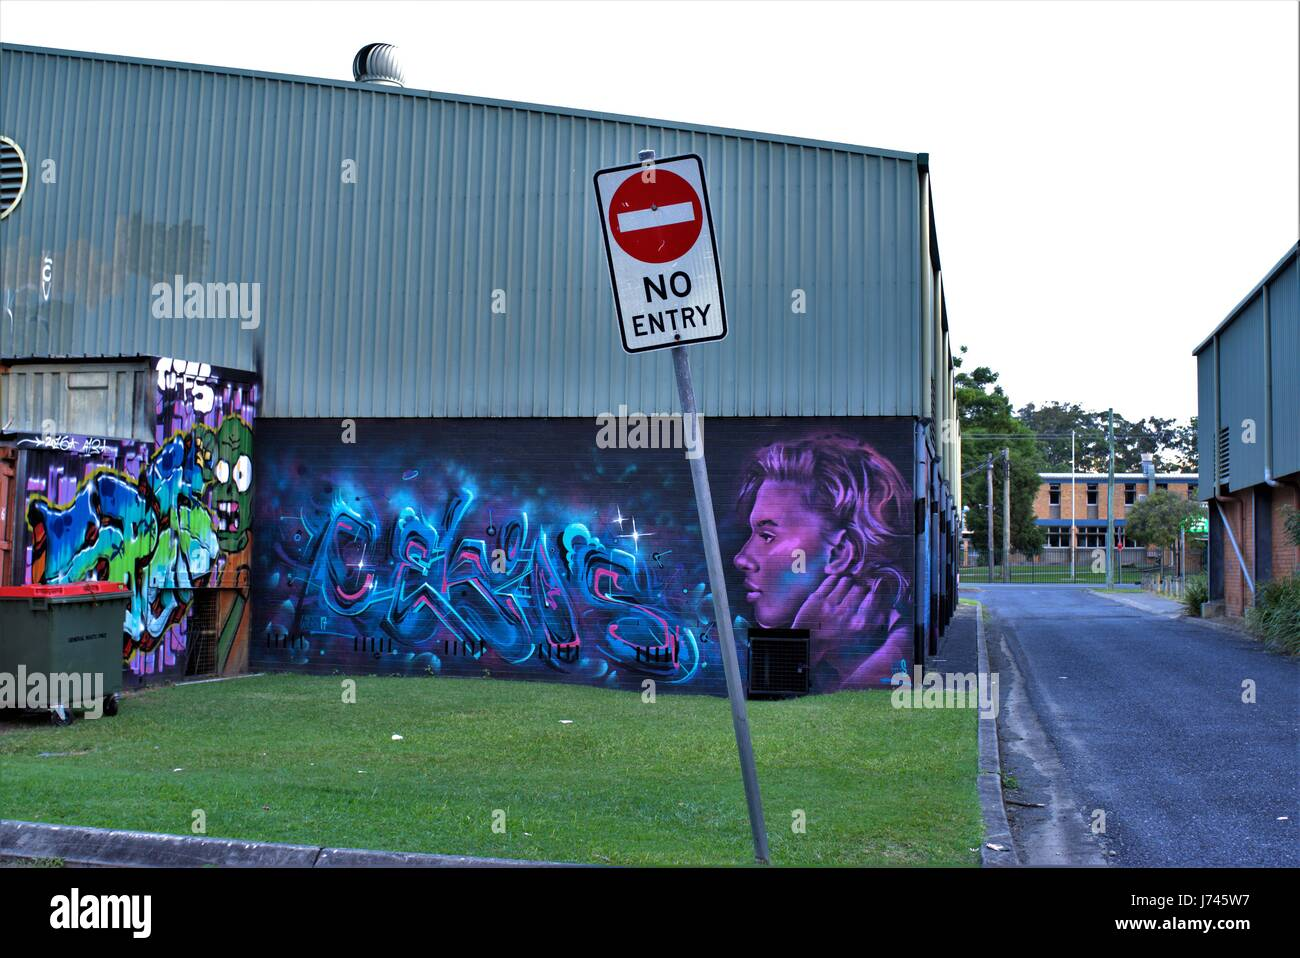 No Entry sign in front of a Graffiti by unknown artist. Graffito. Graffiti on a wall, building, grass, back alley, - Stock Image